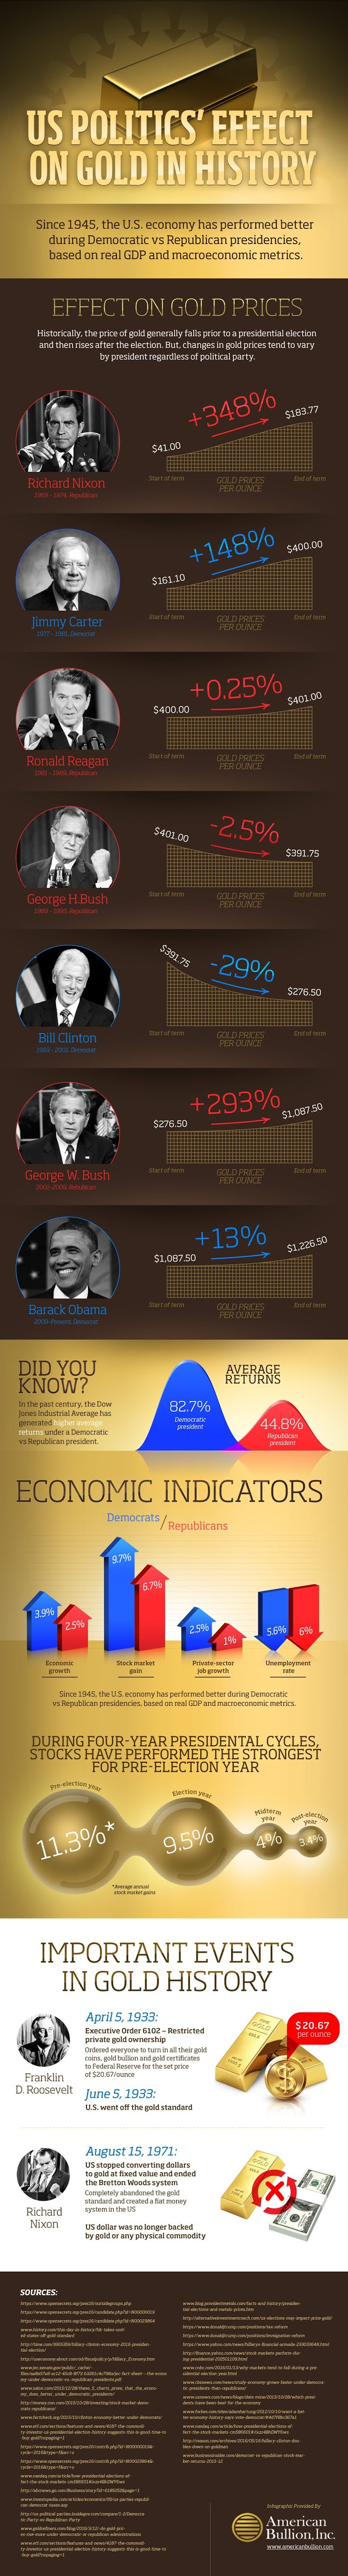 Us Politics Effect on Gold in History #infographic